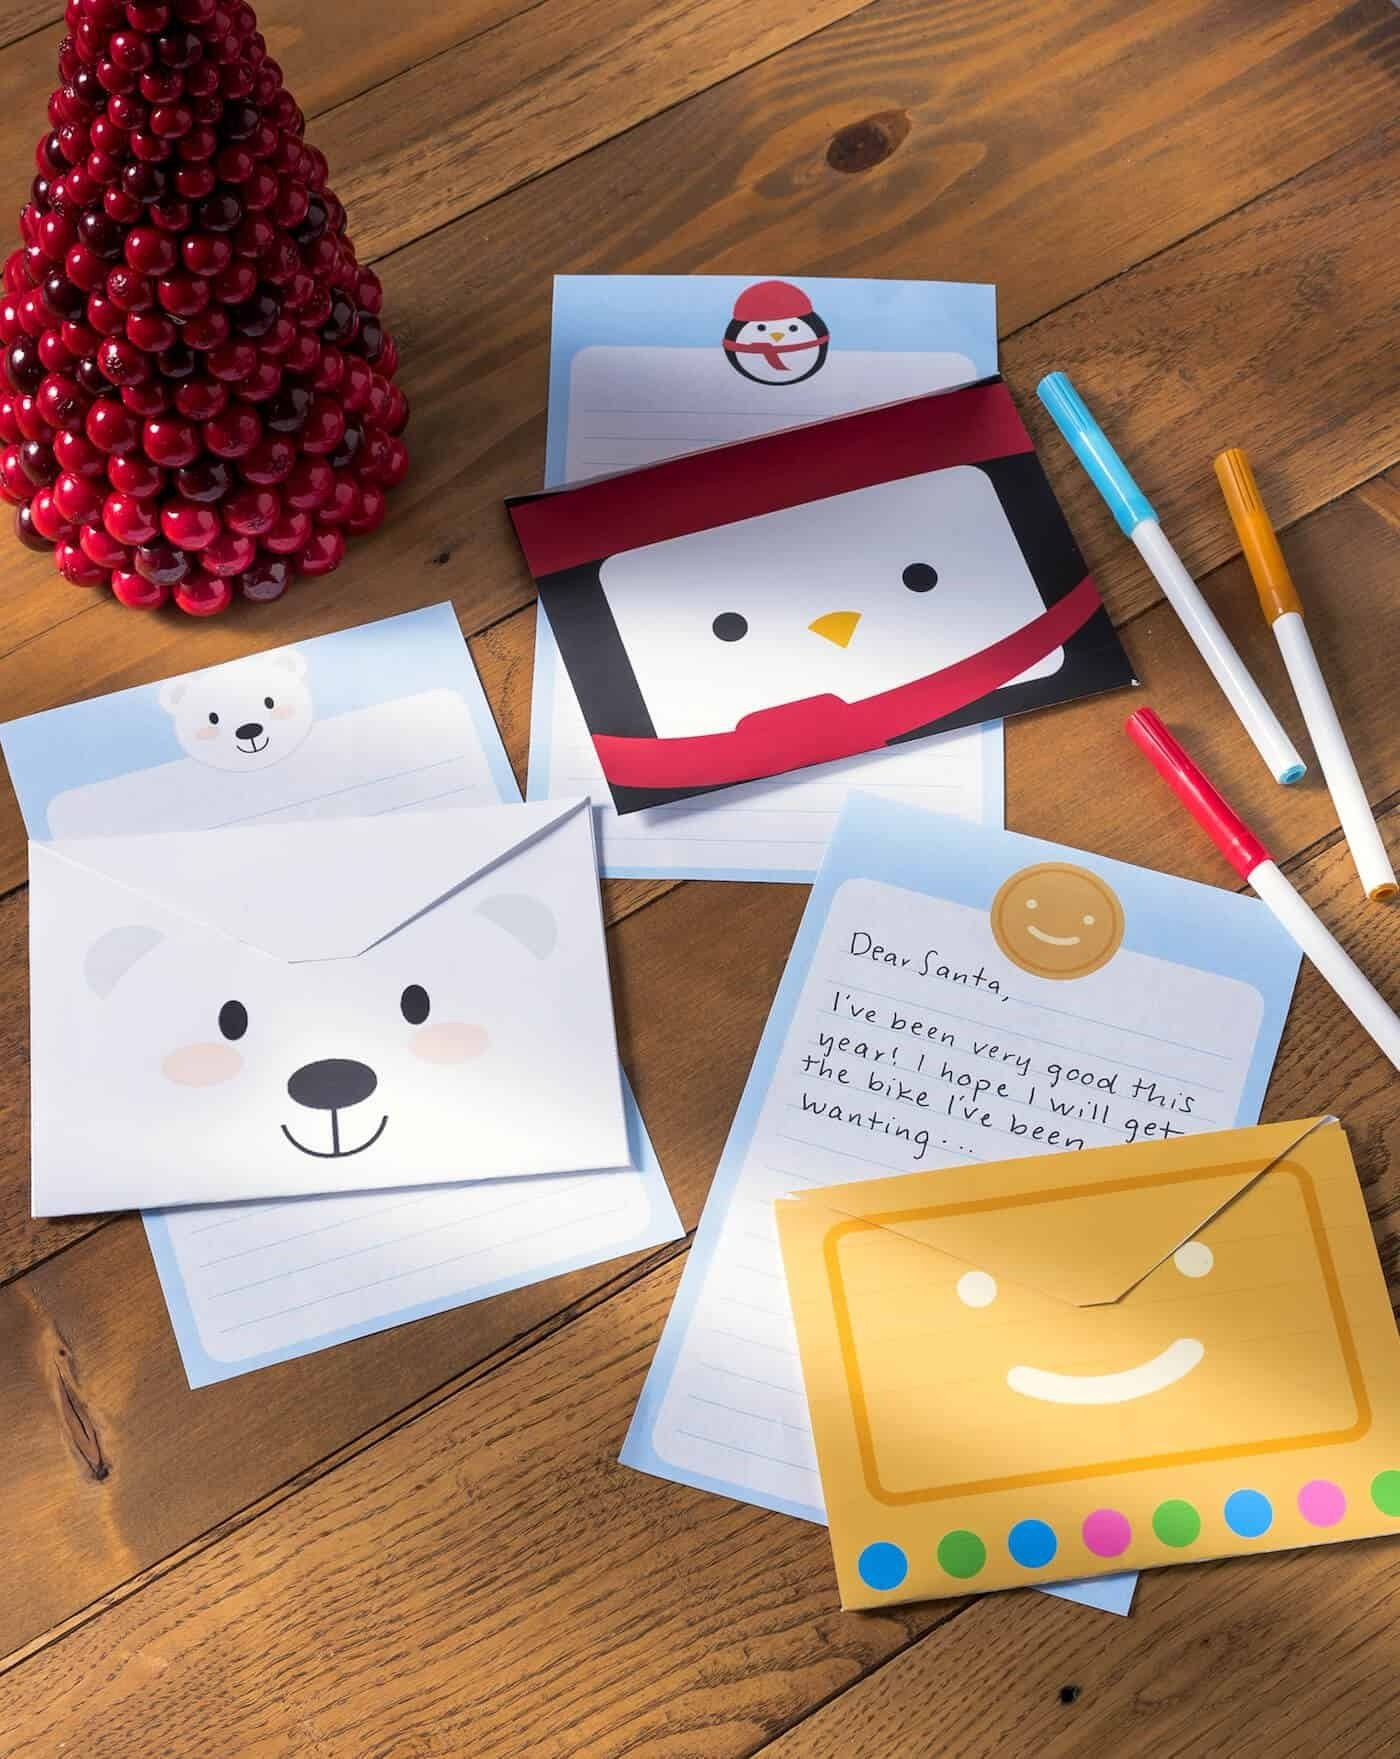 Free Christmas Stationery And Letterheads To Print - Free Printable Christmas Stationery For Kids